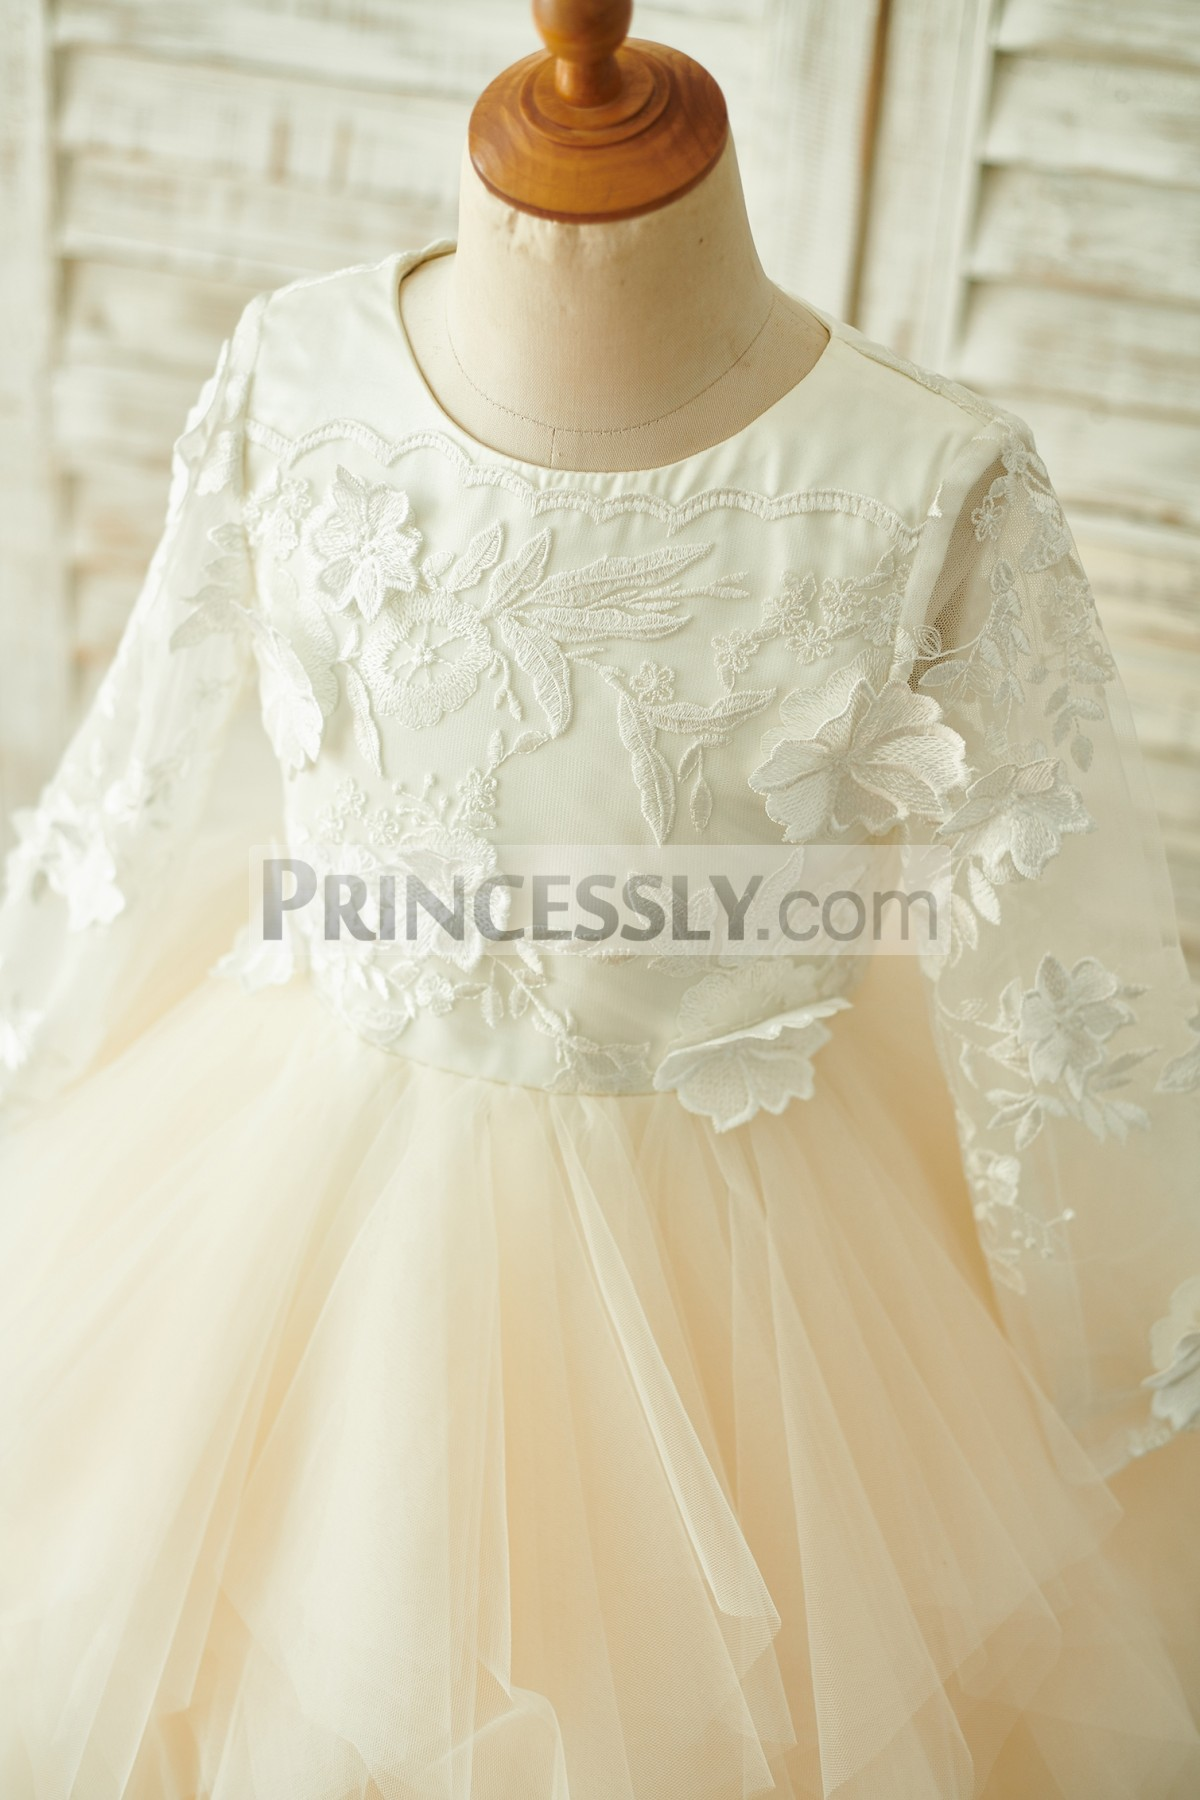 Sheer long sleeves and round neck bodice